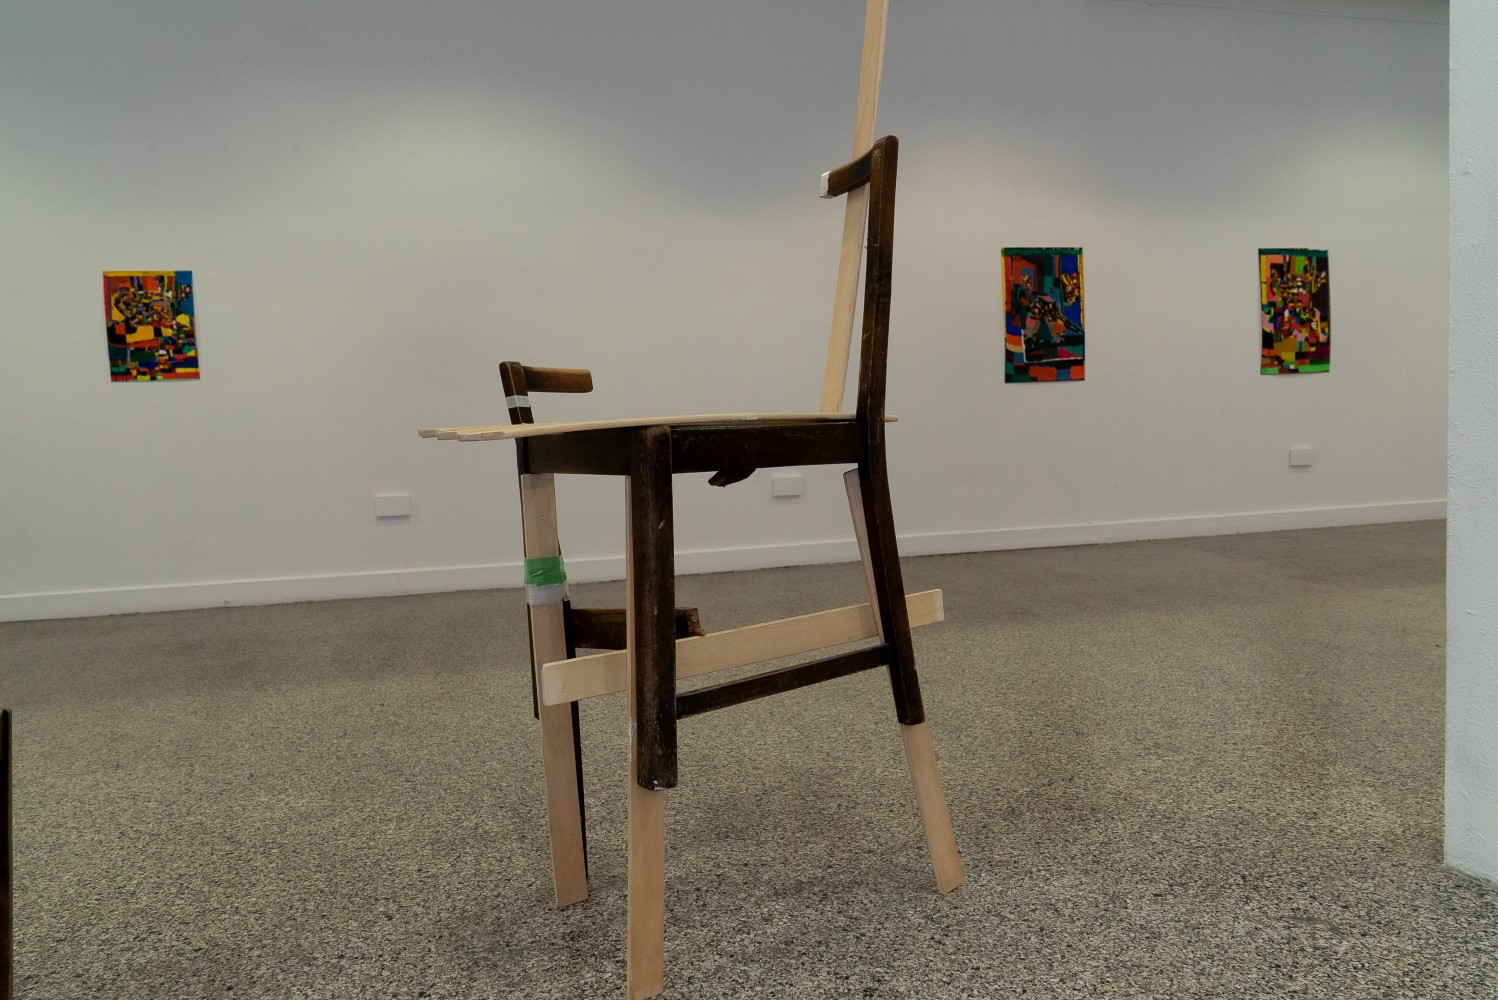 This image shows a deconstructed dark wooden chair in a gallery. The gallery wall is white and has three paintings on it. The gallery floor has a specked grey effect. On the right hand side of the image there is a column.The chair on is completely deconstructed and put back together in a strange way with lighter wood. There are three legs. One leg is taped with green tape.